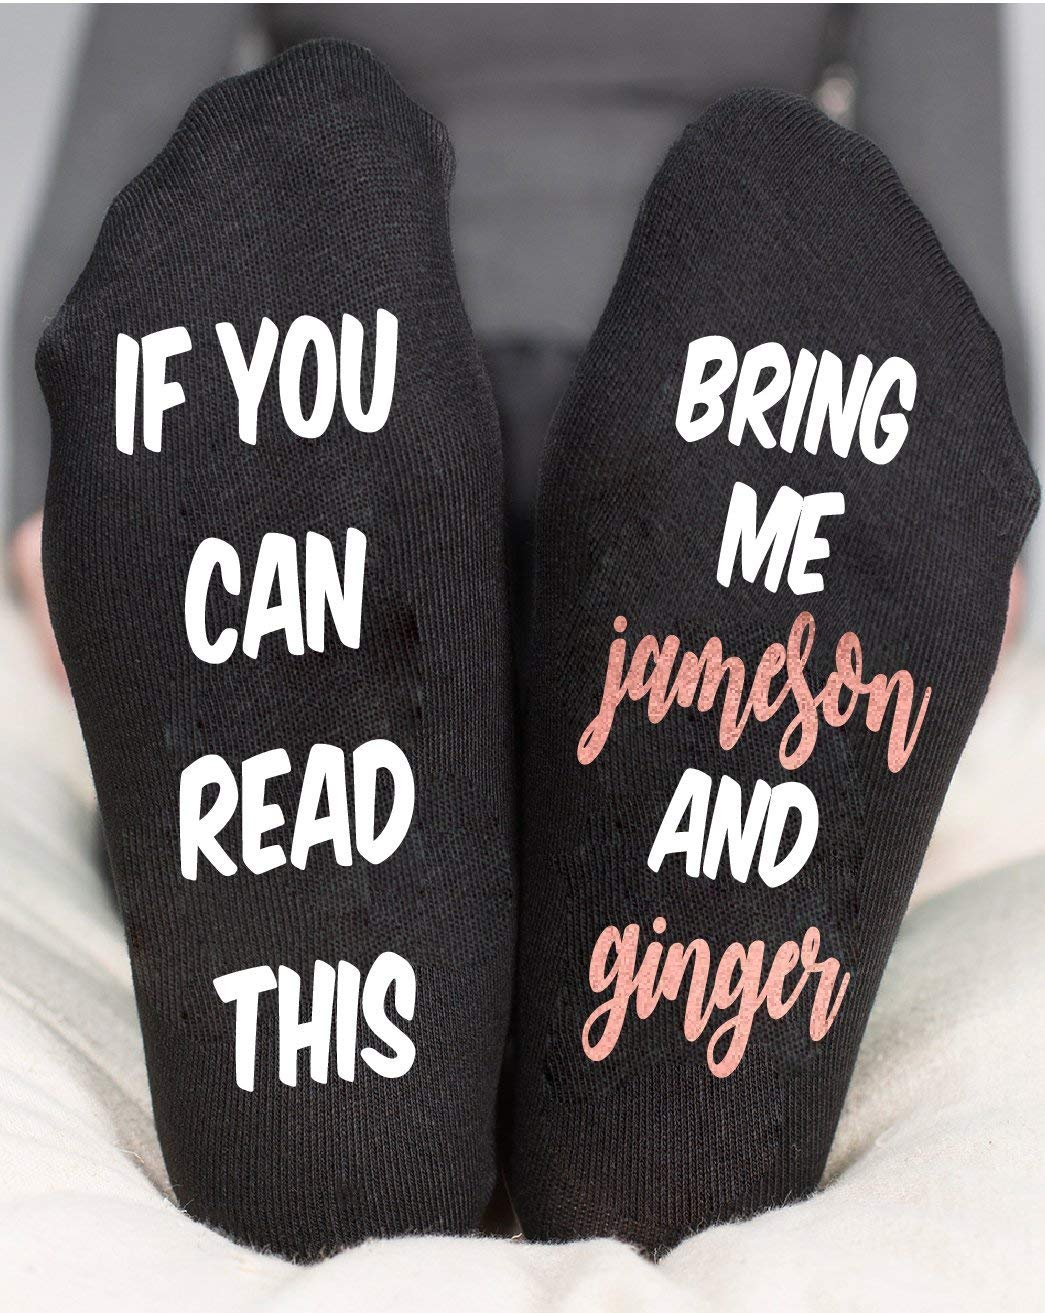 If You Can Read This Funny Socks Bring Me A Jameson And Ginger